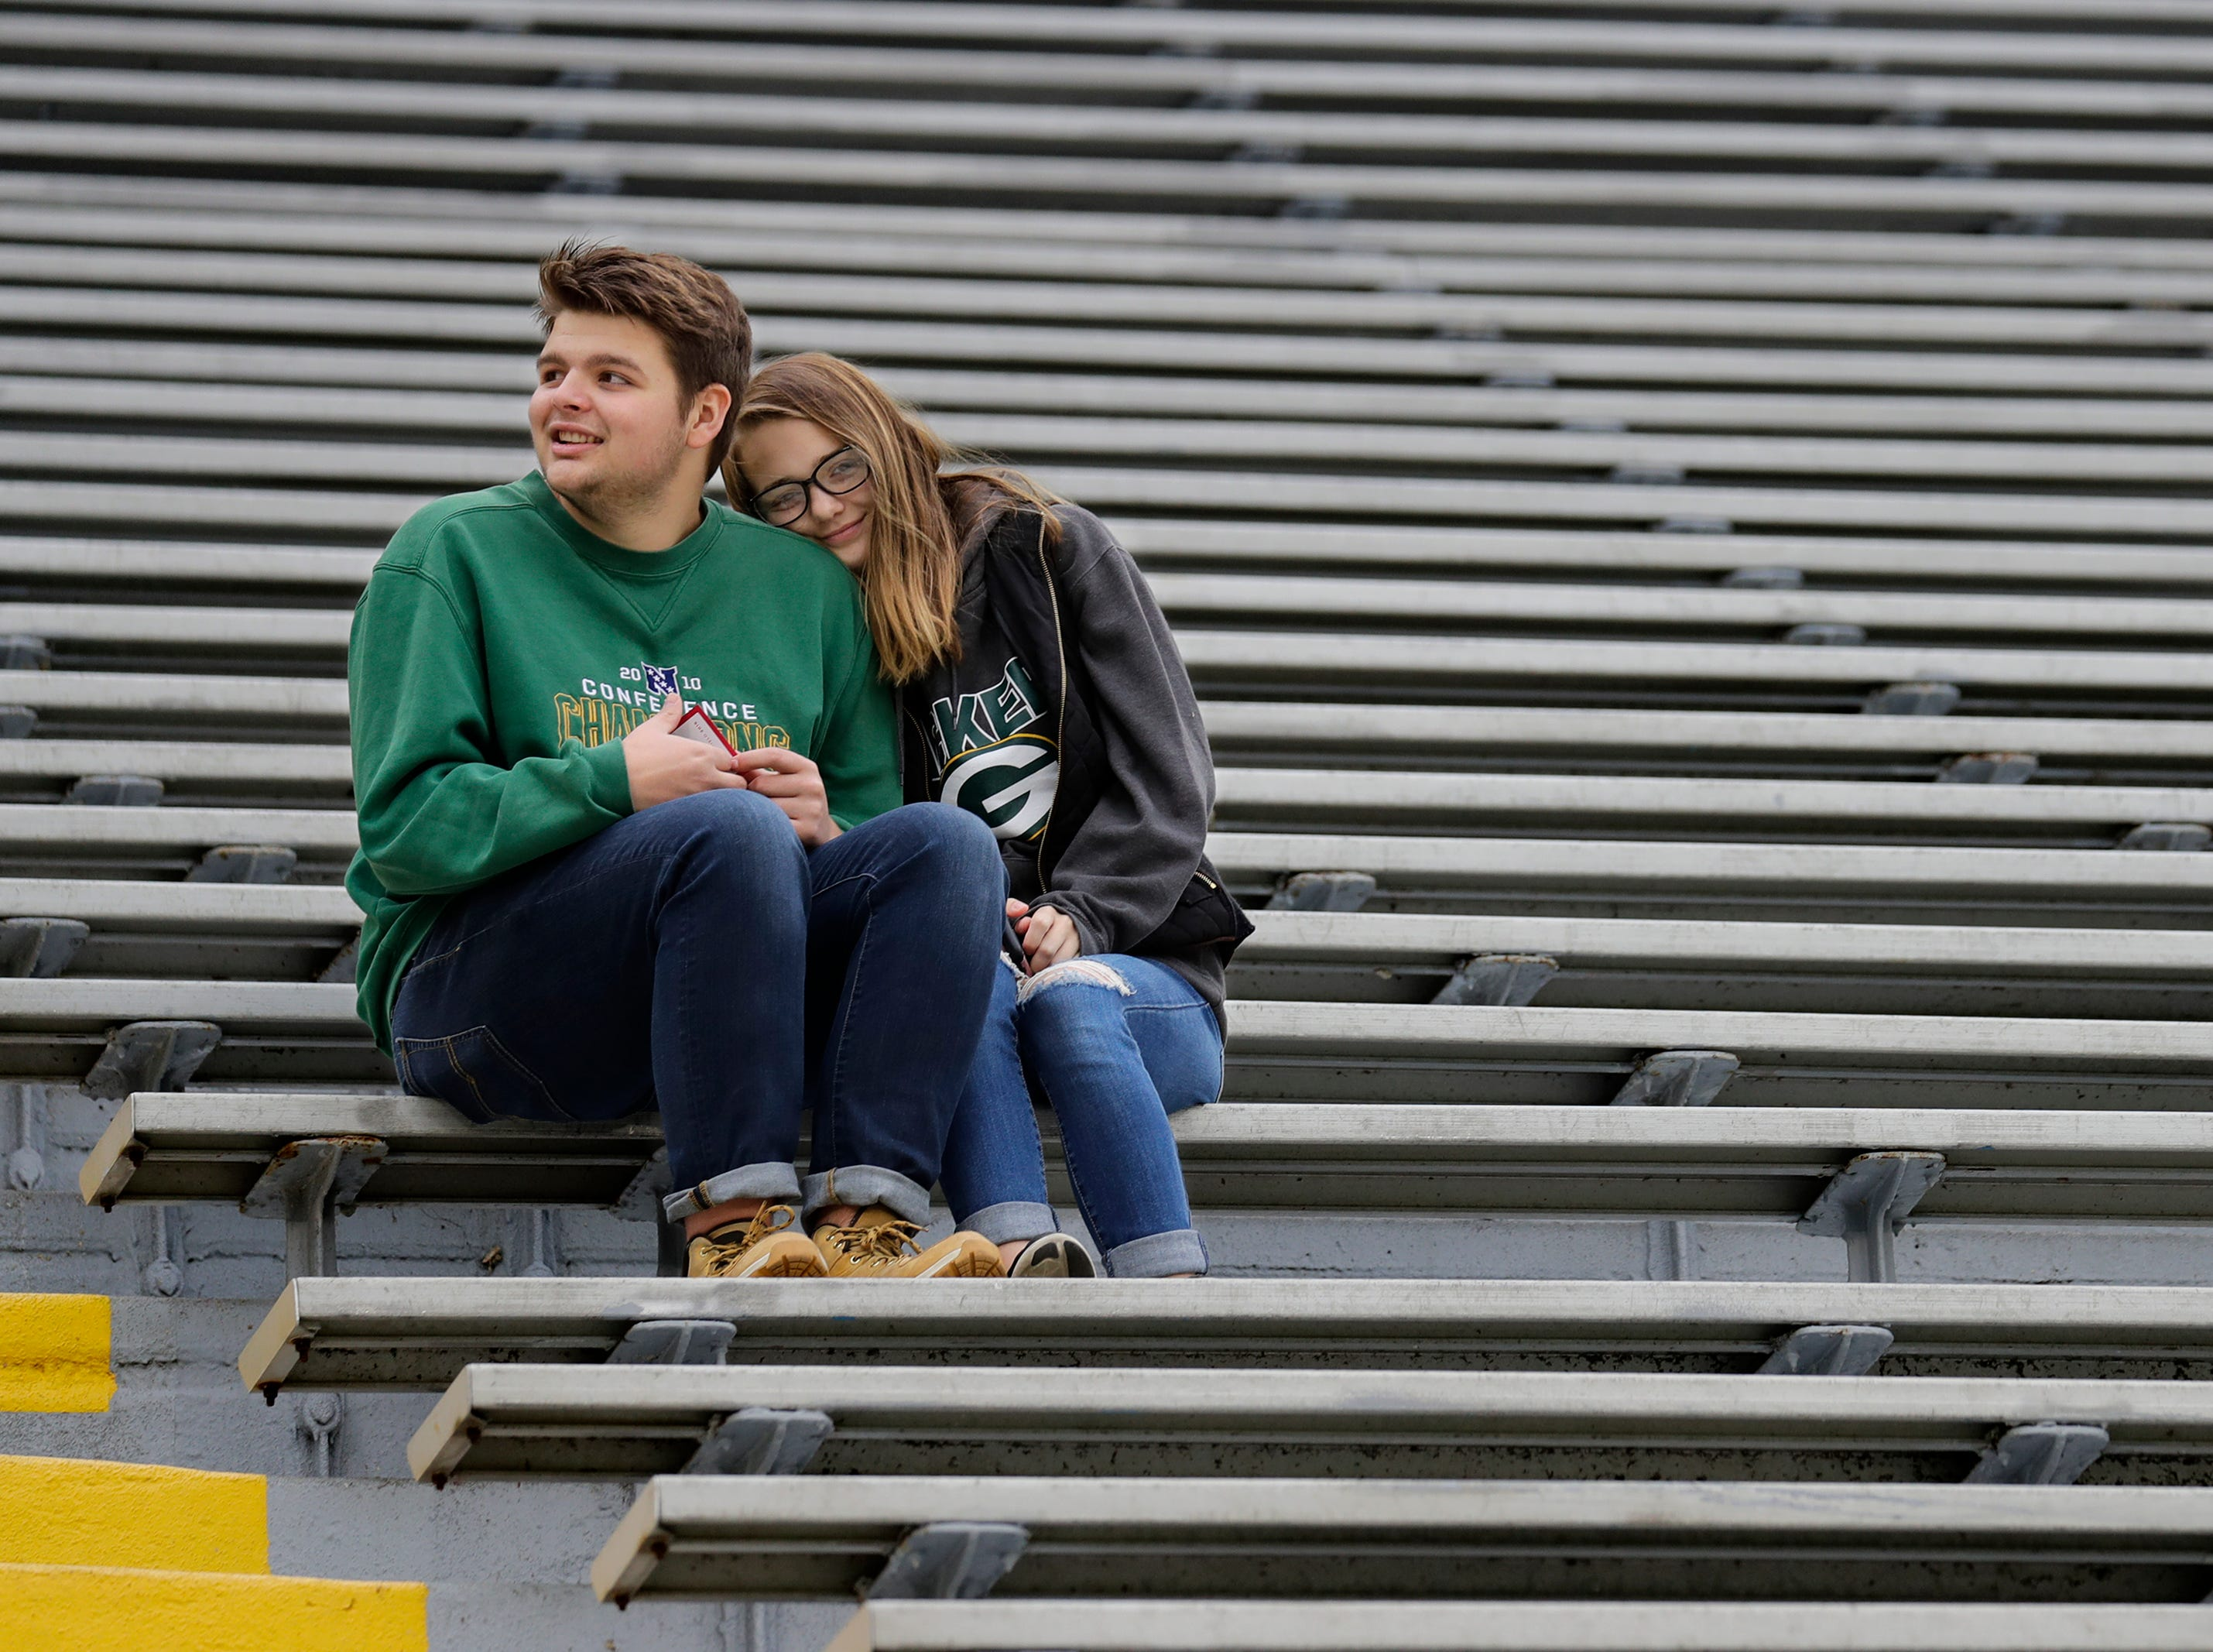 Bryan Osterberg, left, and Christine Neuville, both of De Pere, huddle up to stay warm as they get to their seats early for the Green Bay Packers game against the Buffalo Bills Sunday, Sept. 30, 2018, at Lambeau Field in Green Bay, Wis. Dan Powers/USA TODAY NETWORK-Wisconsin